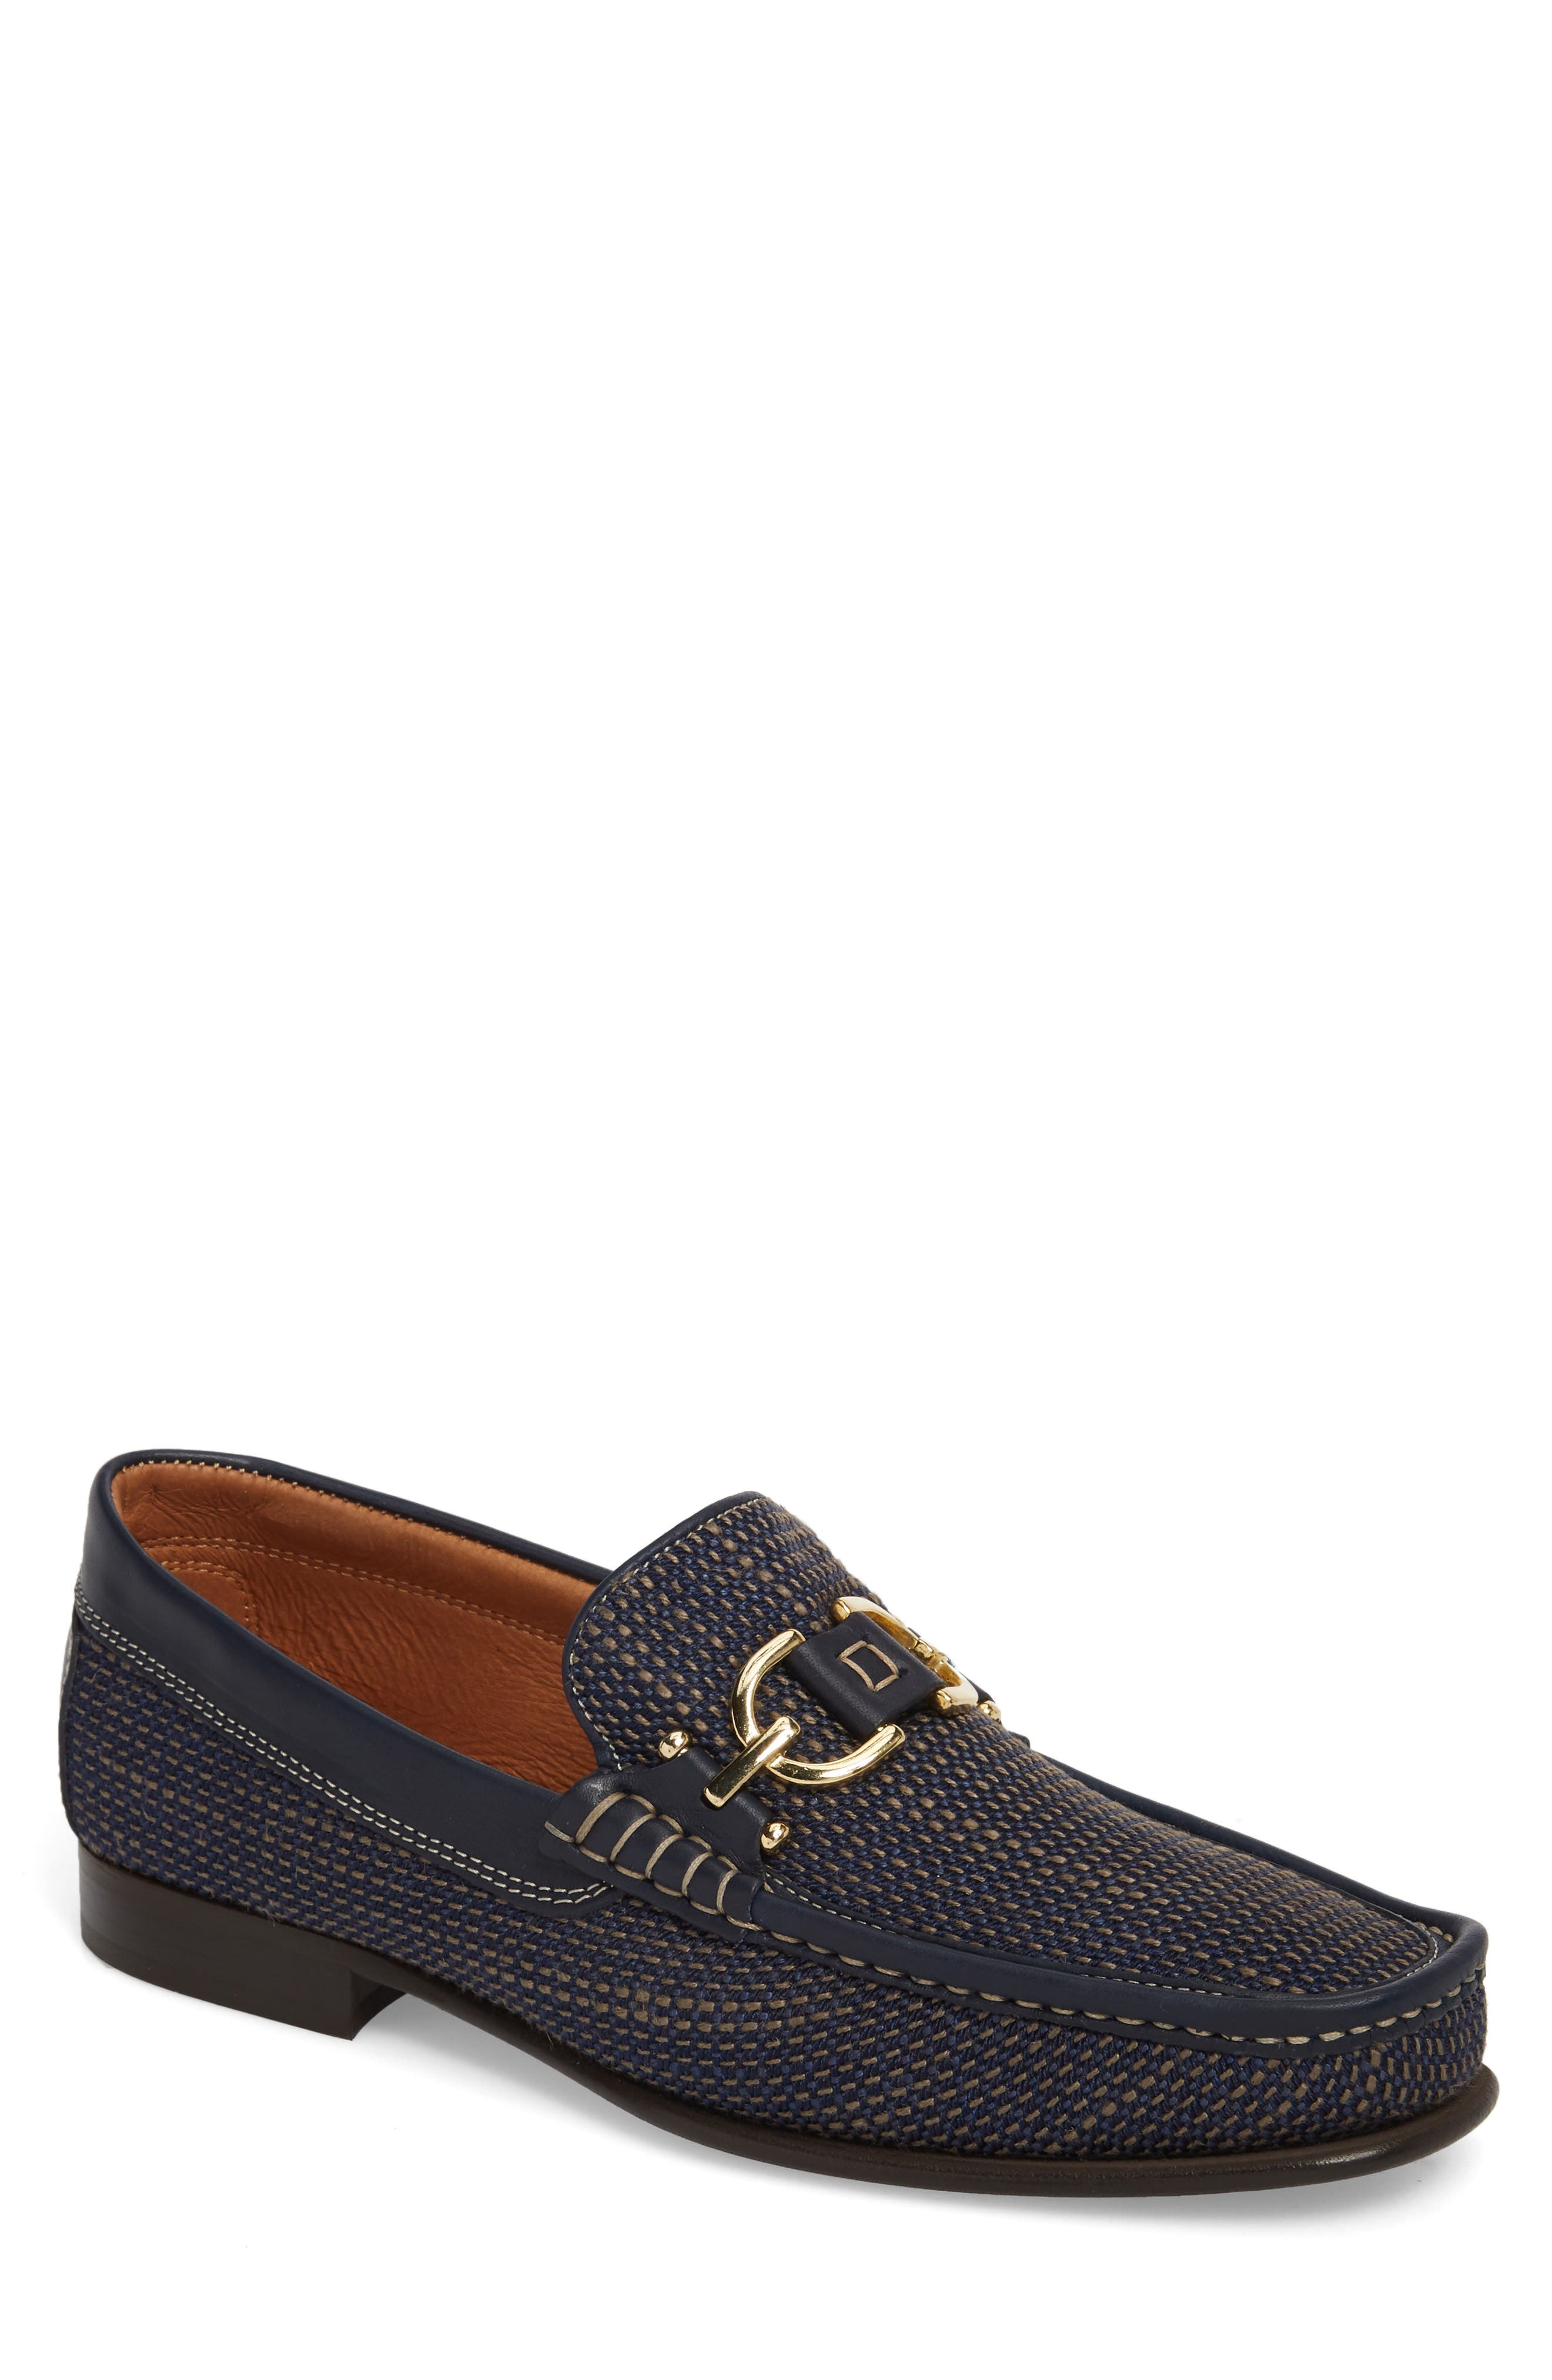 Dacio Woven Bit Loafer,                         Main,                         color, Navy Leather